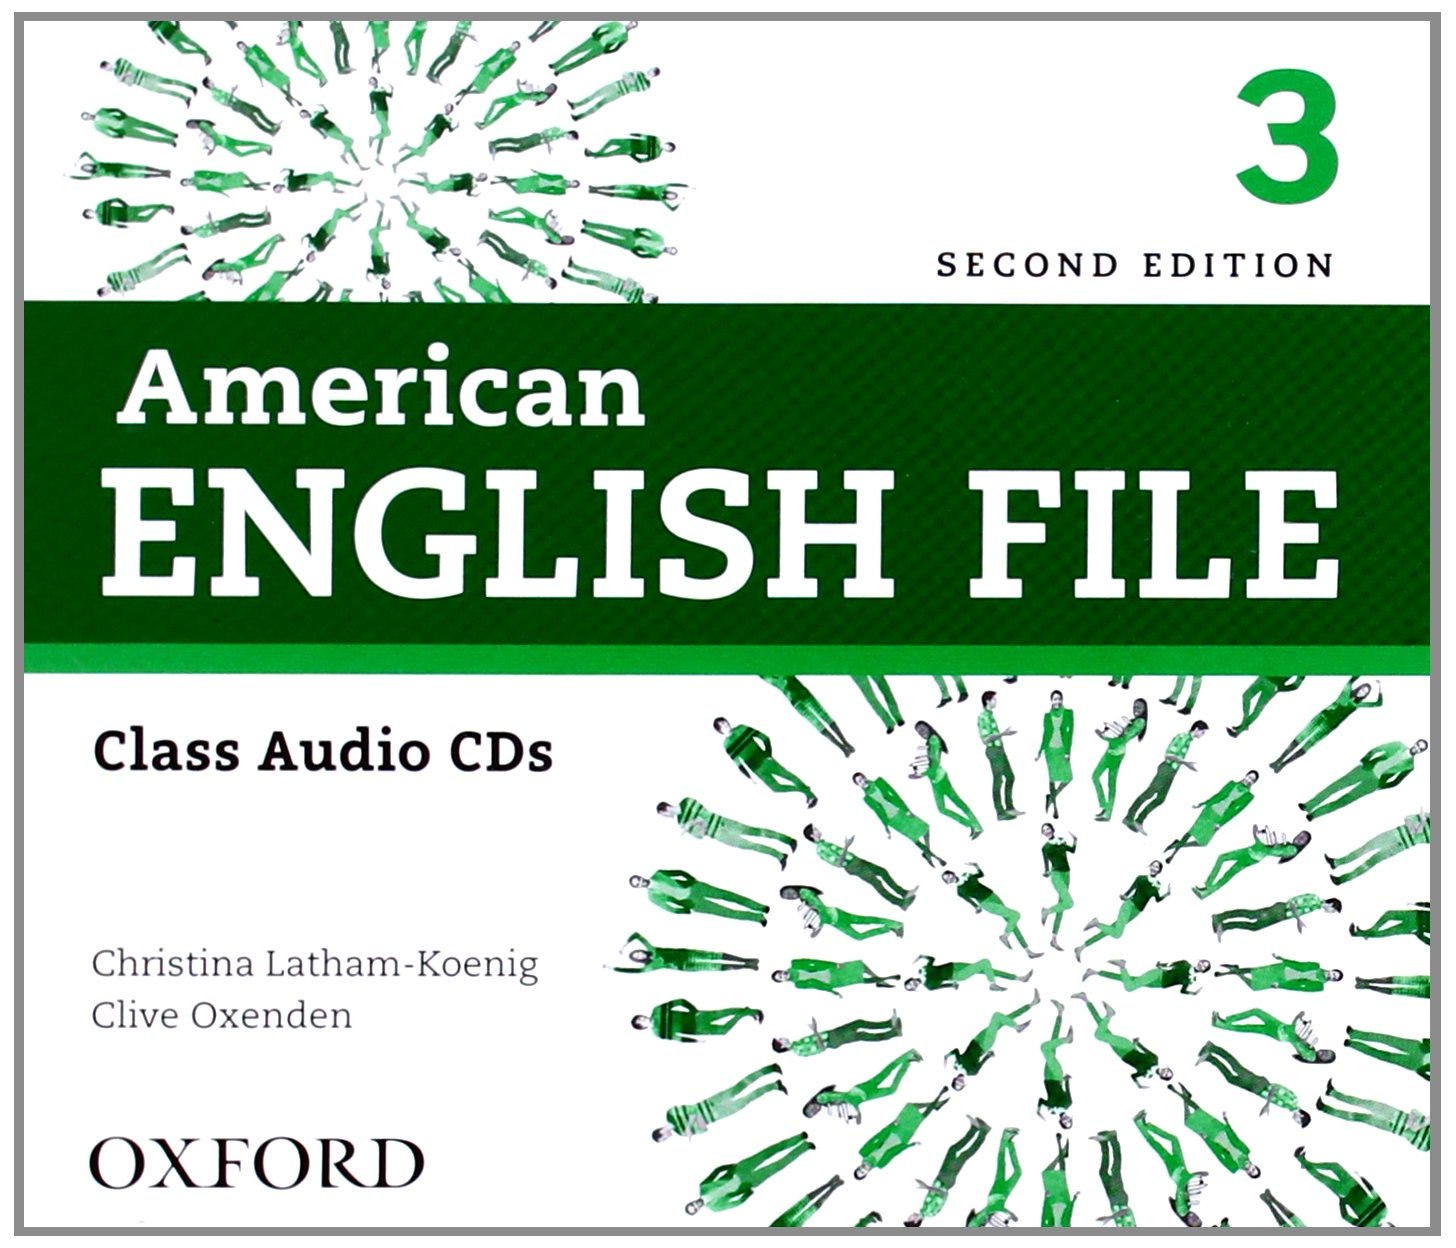 American English File Second Edition Level 3: Class Audio CDs (4)